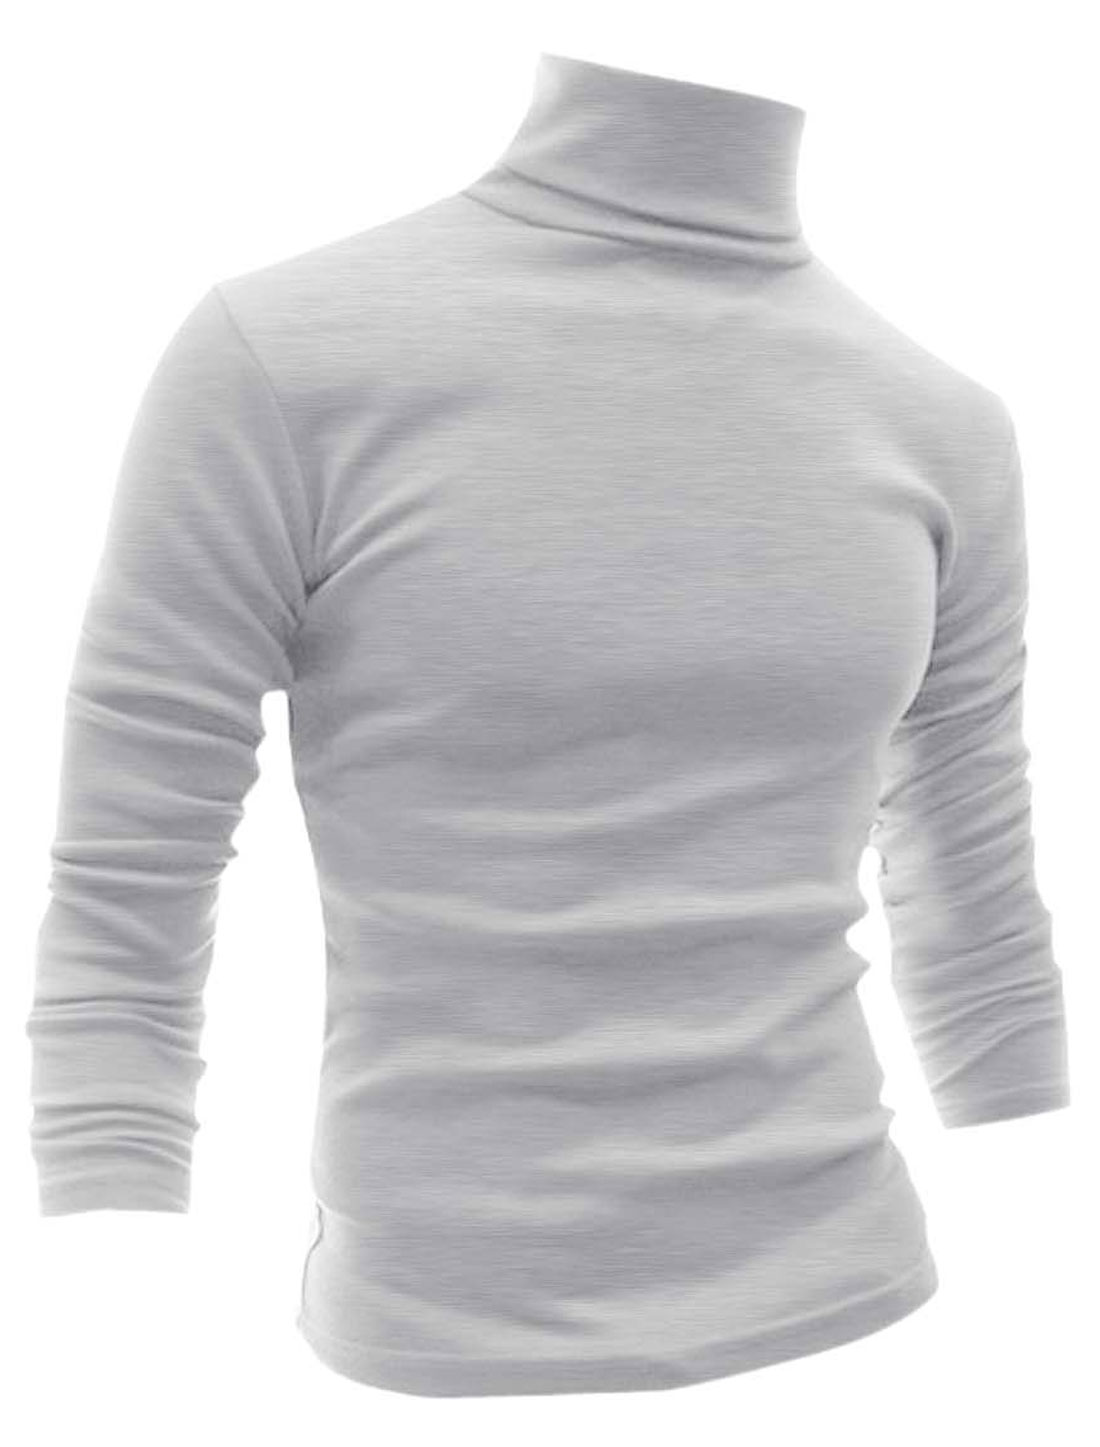 Men Long Sleeves Turtle Neck Slim Fit Tee Shirt Light Gray S